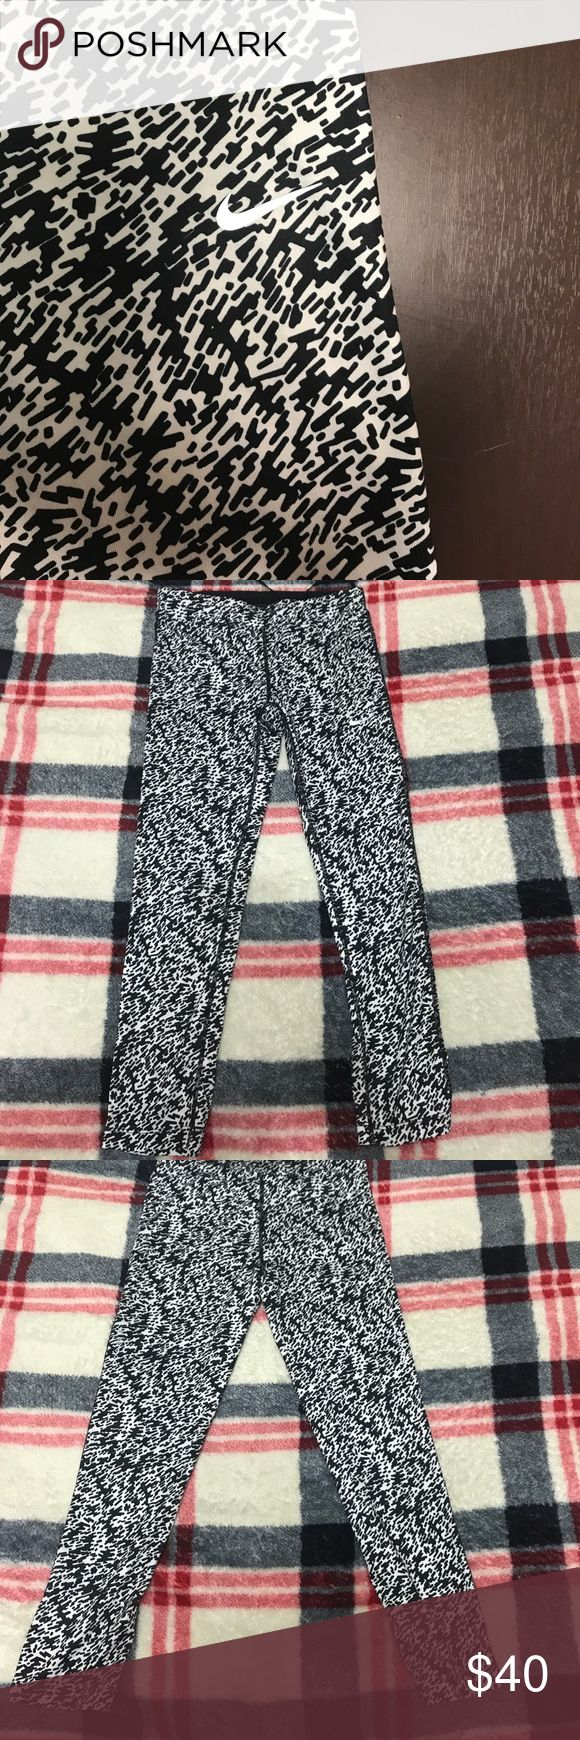 Cute NIKE patterned Capris These stylish black and white leggings will put some more glam into your weekly visits to the gym and will make you feel more confident with a bold taste of style!!! Nike Pants Capris